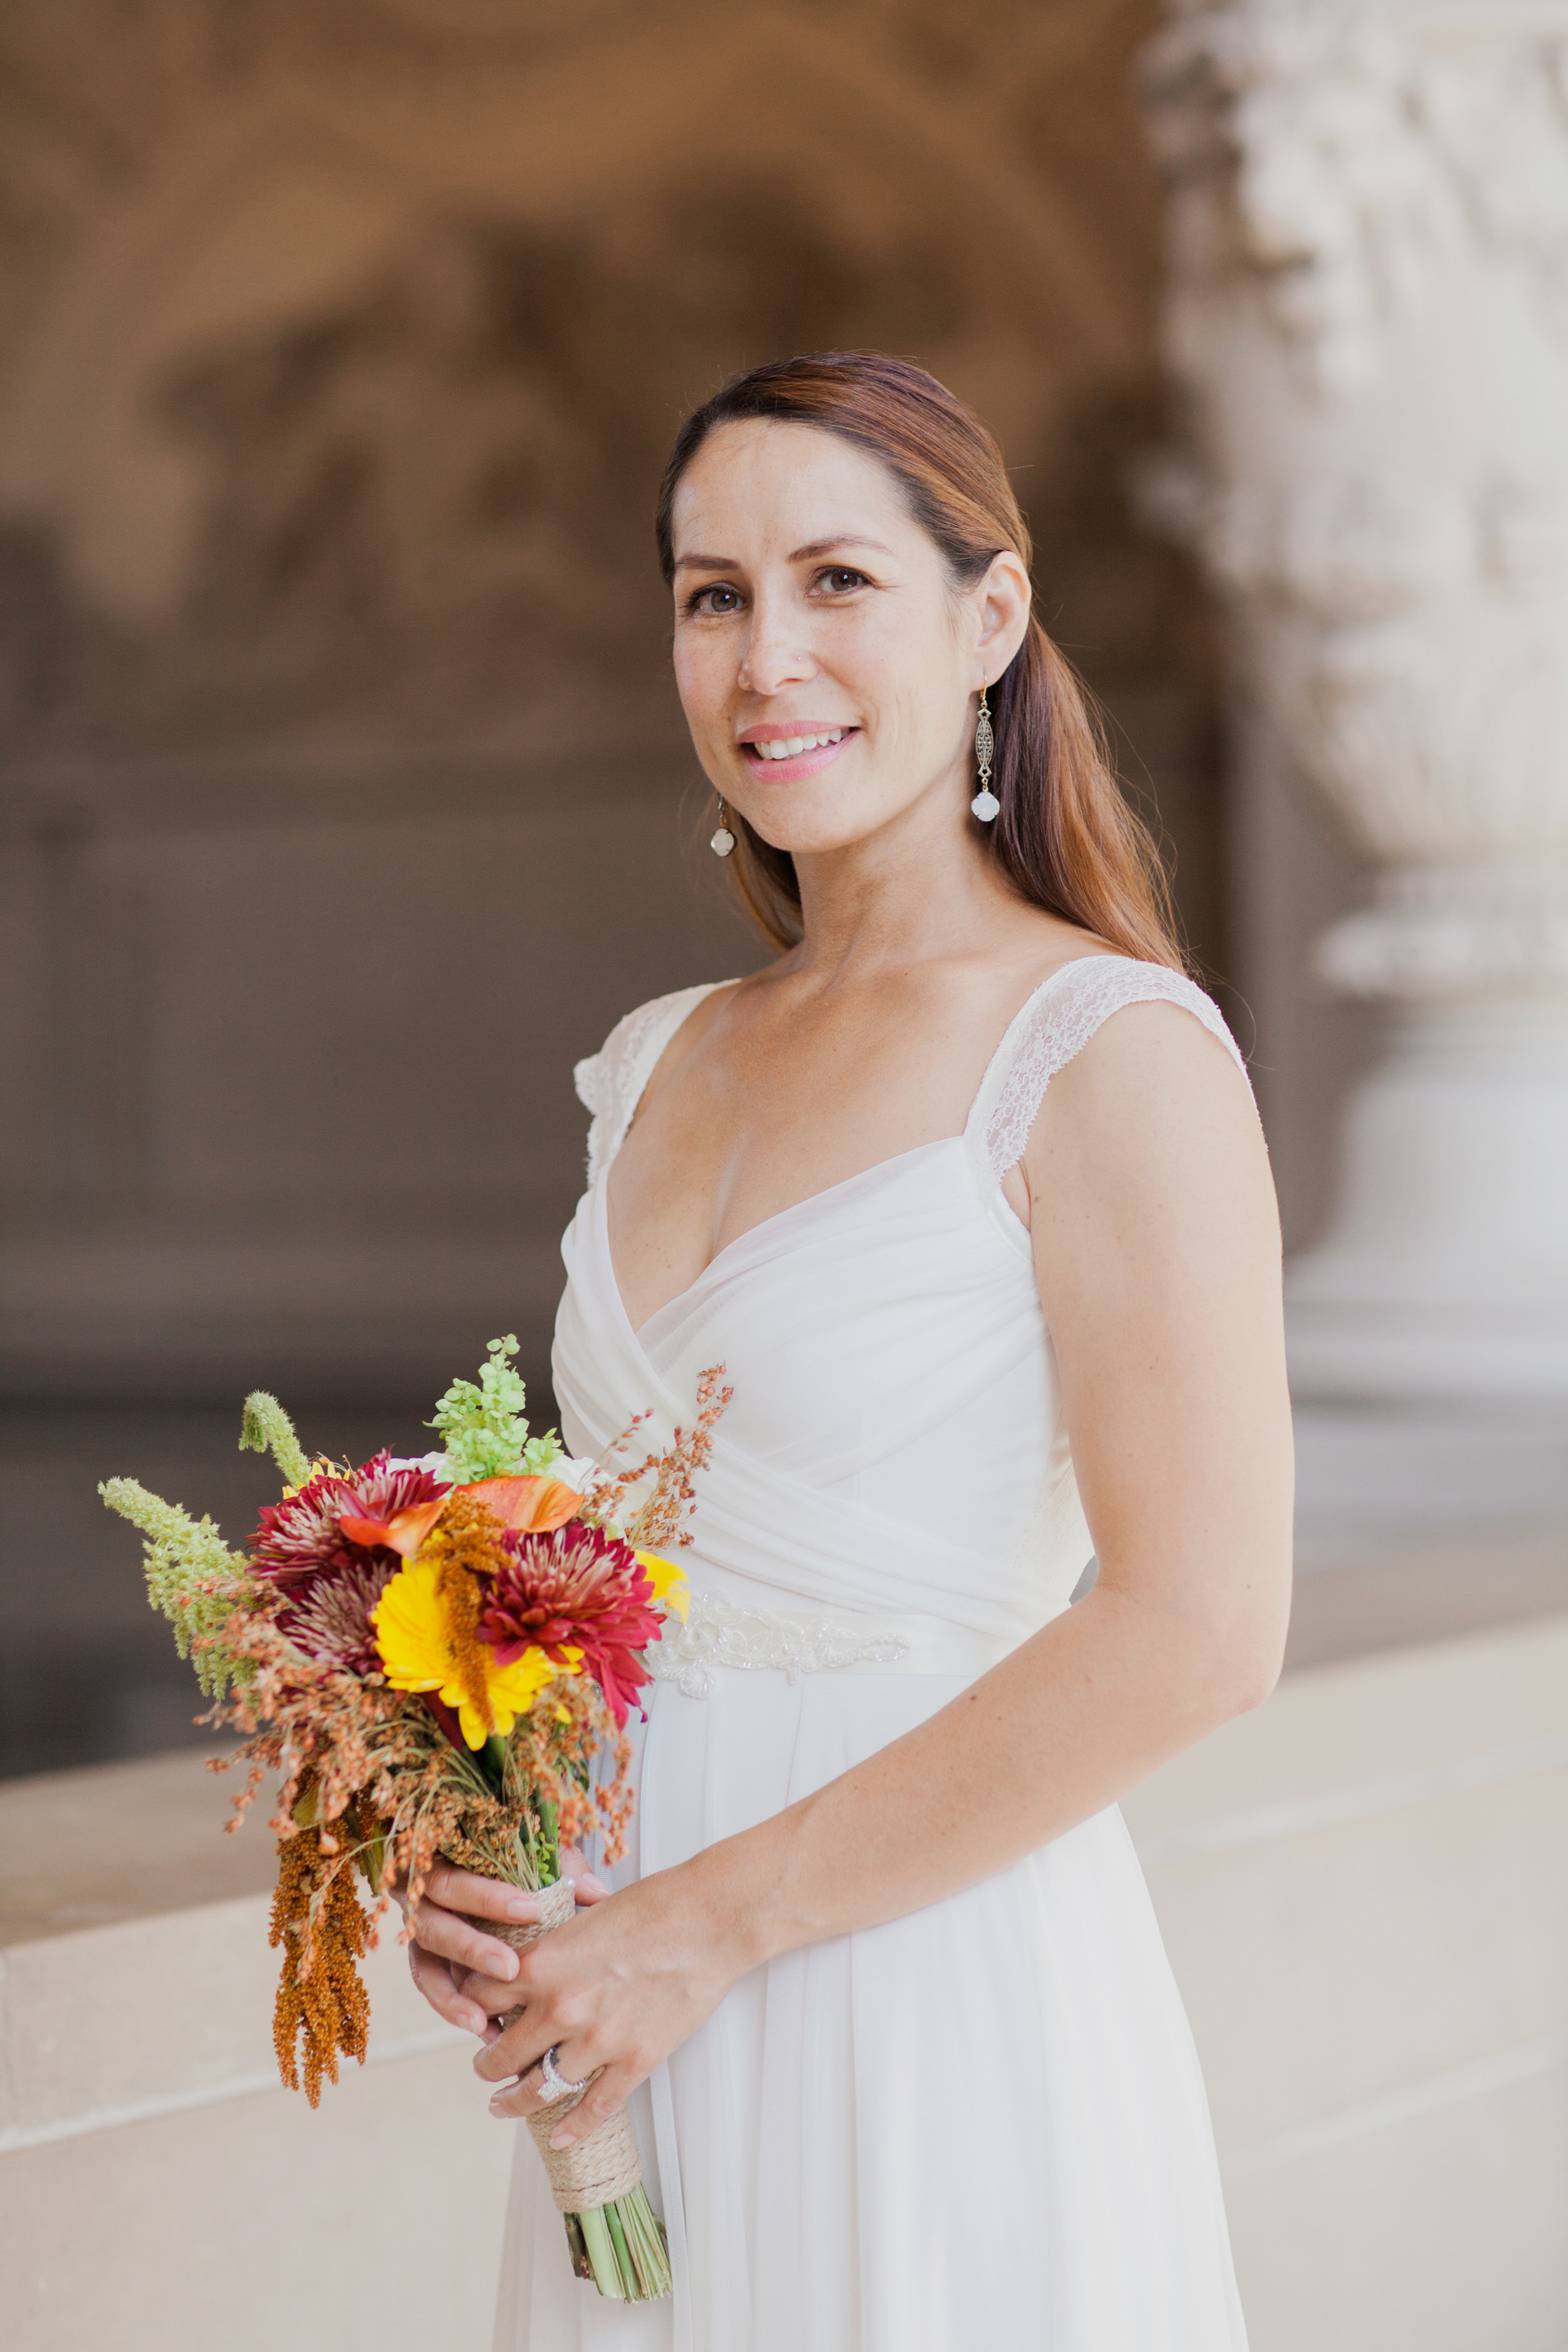 Portrait of classic bride after eloping in San Francisco City Hall.